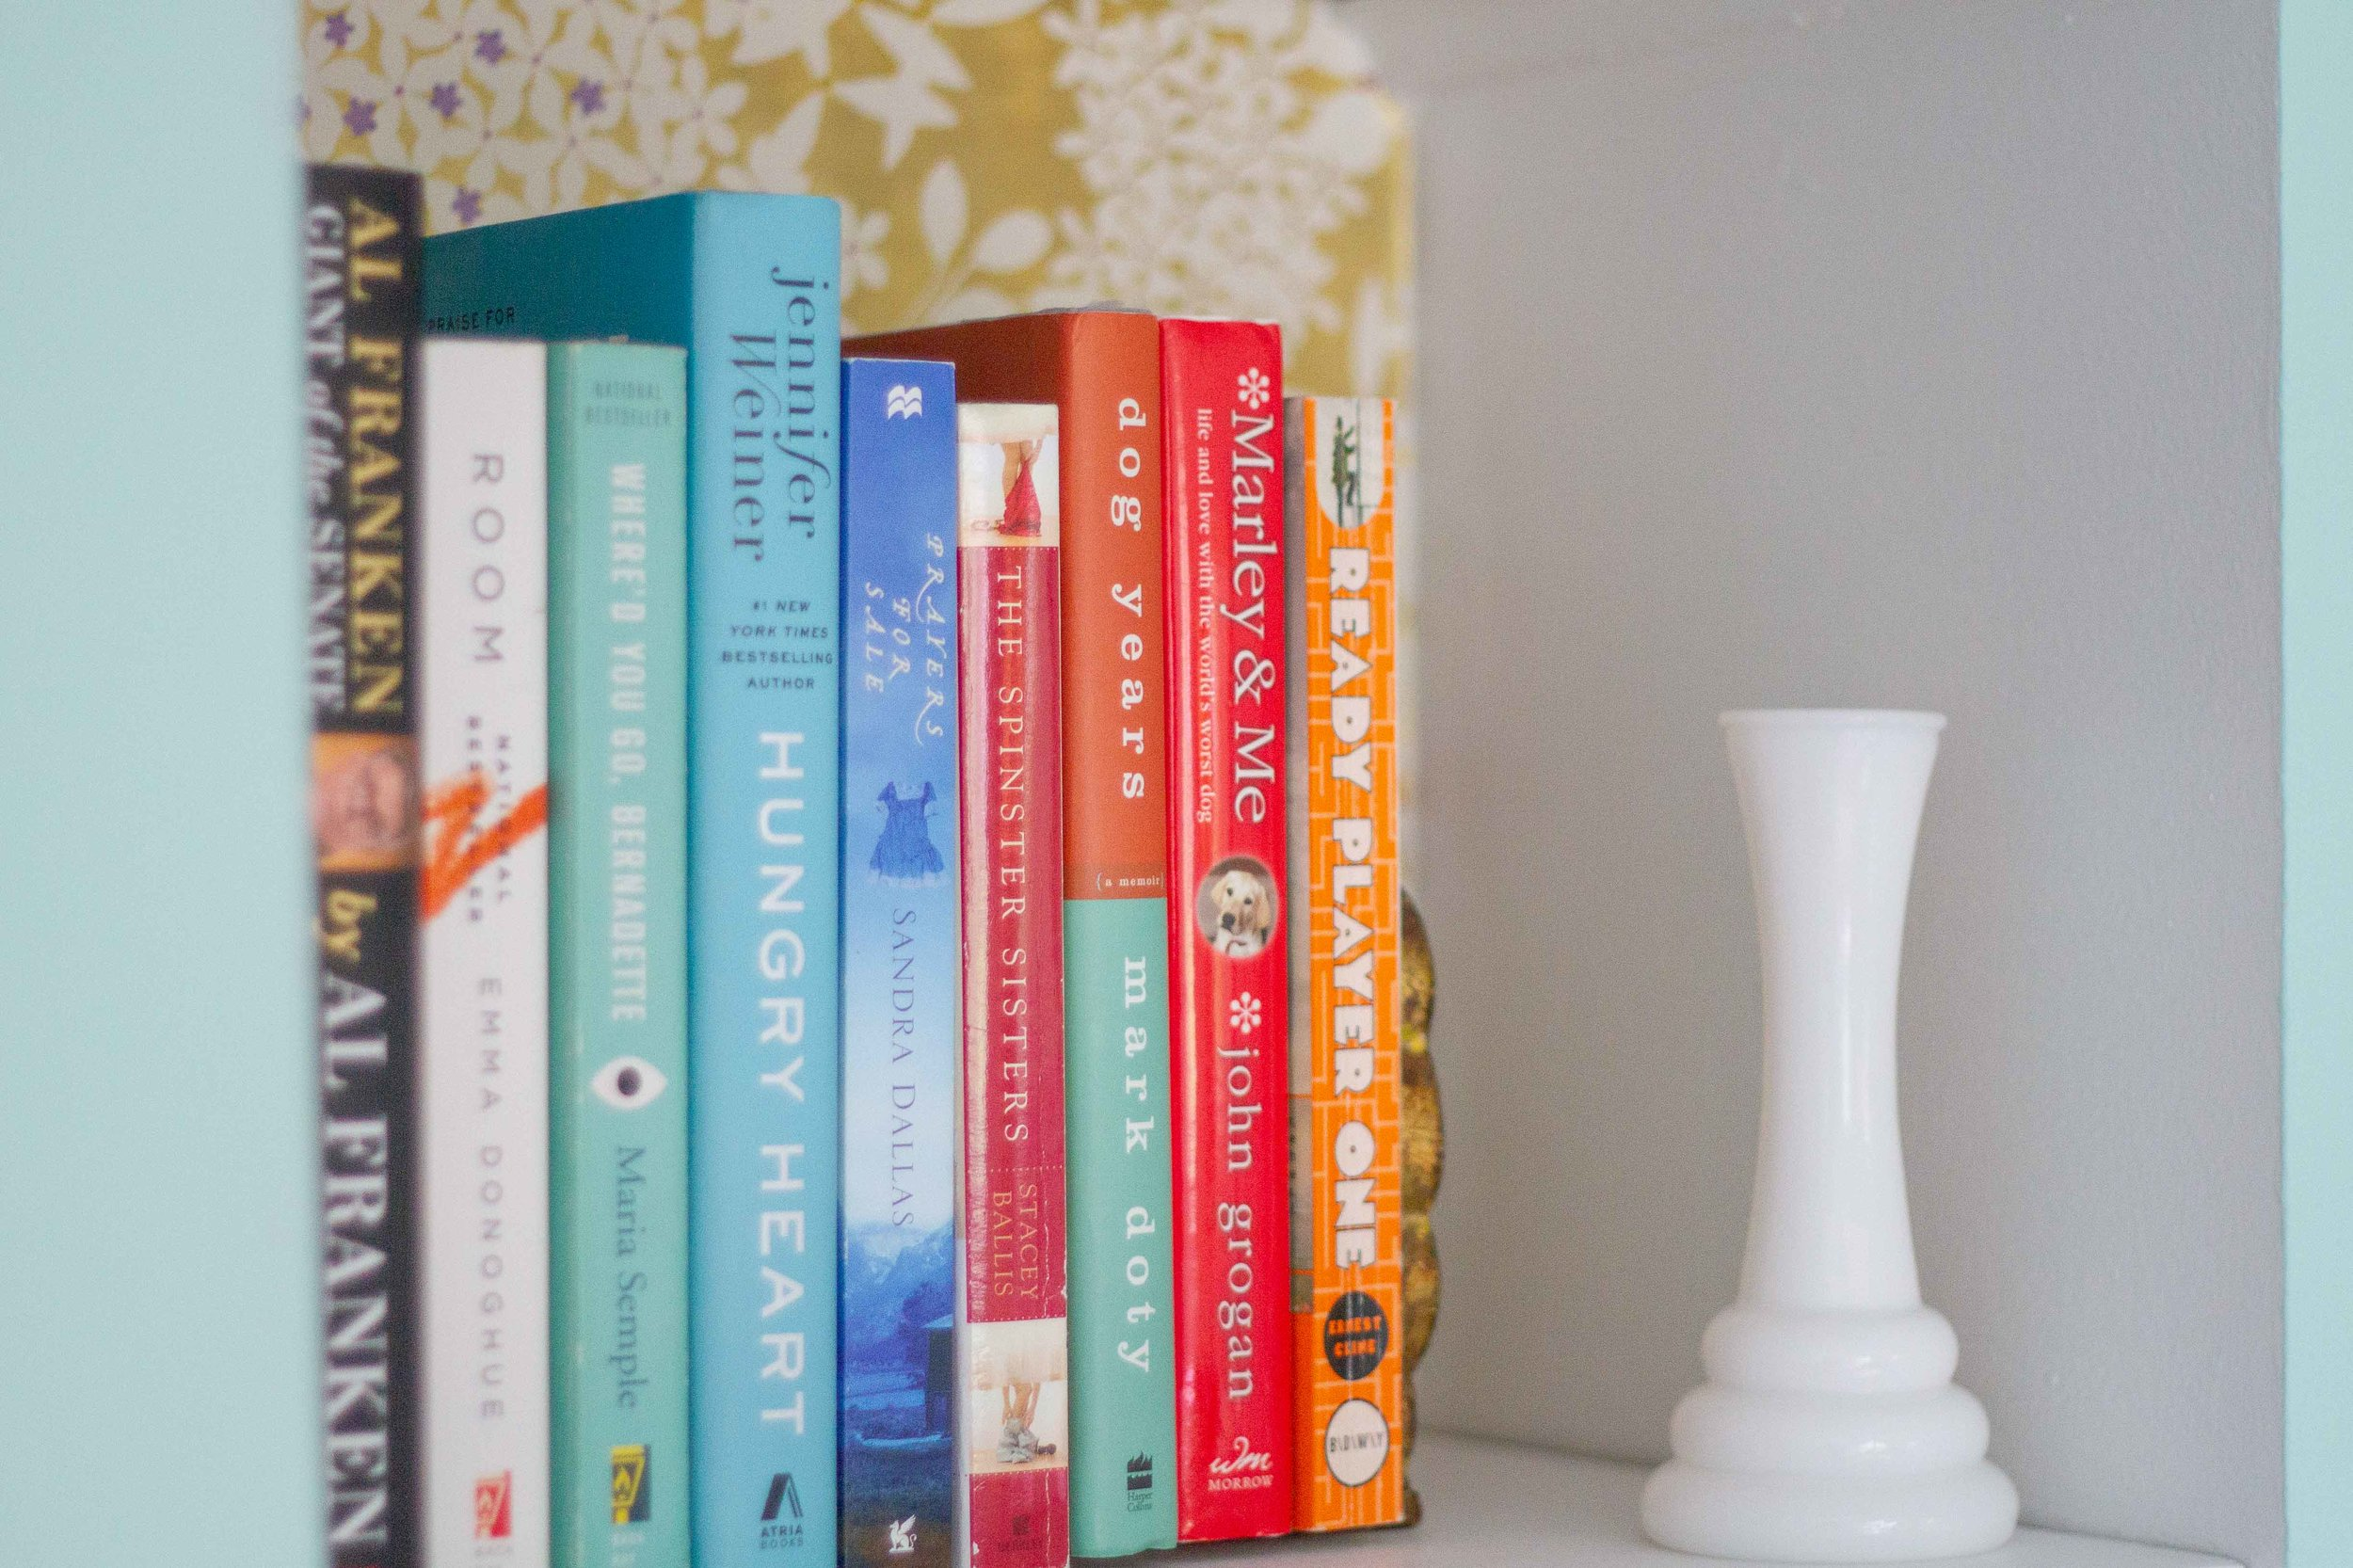 Books for travelers to take with them on their journeys